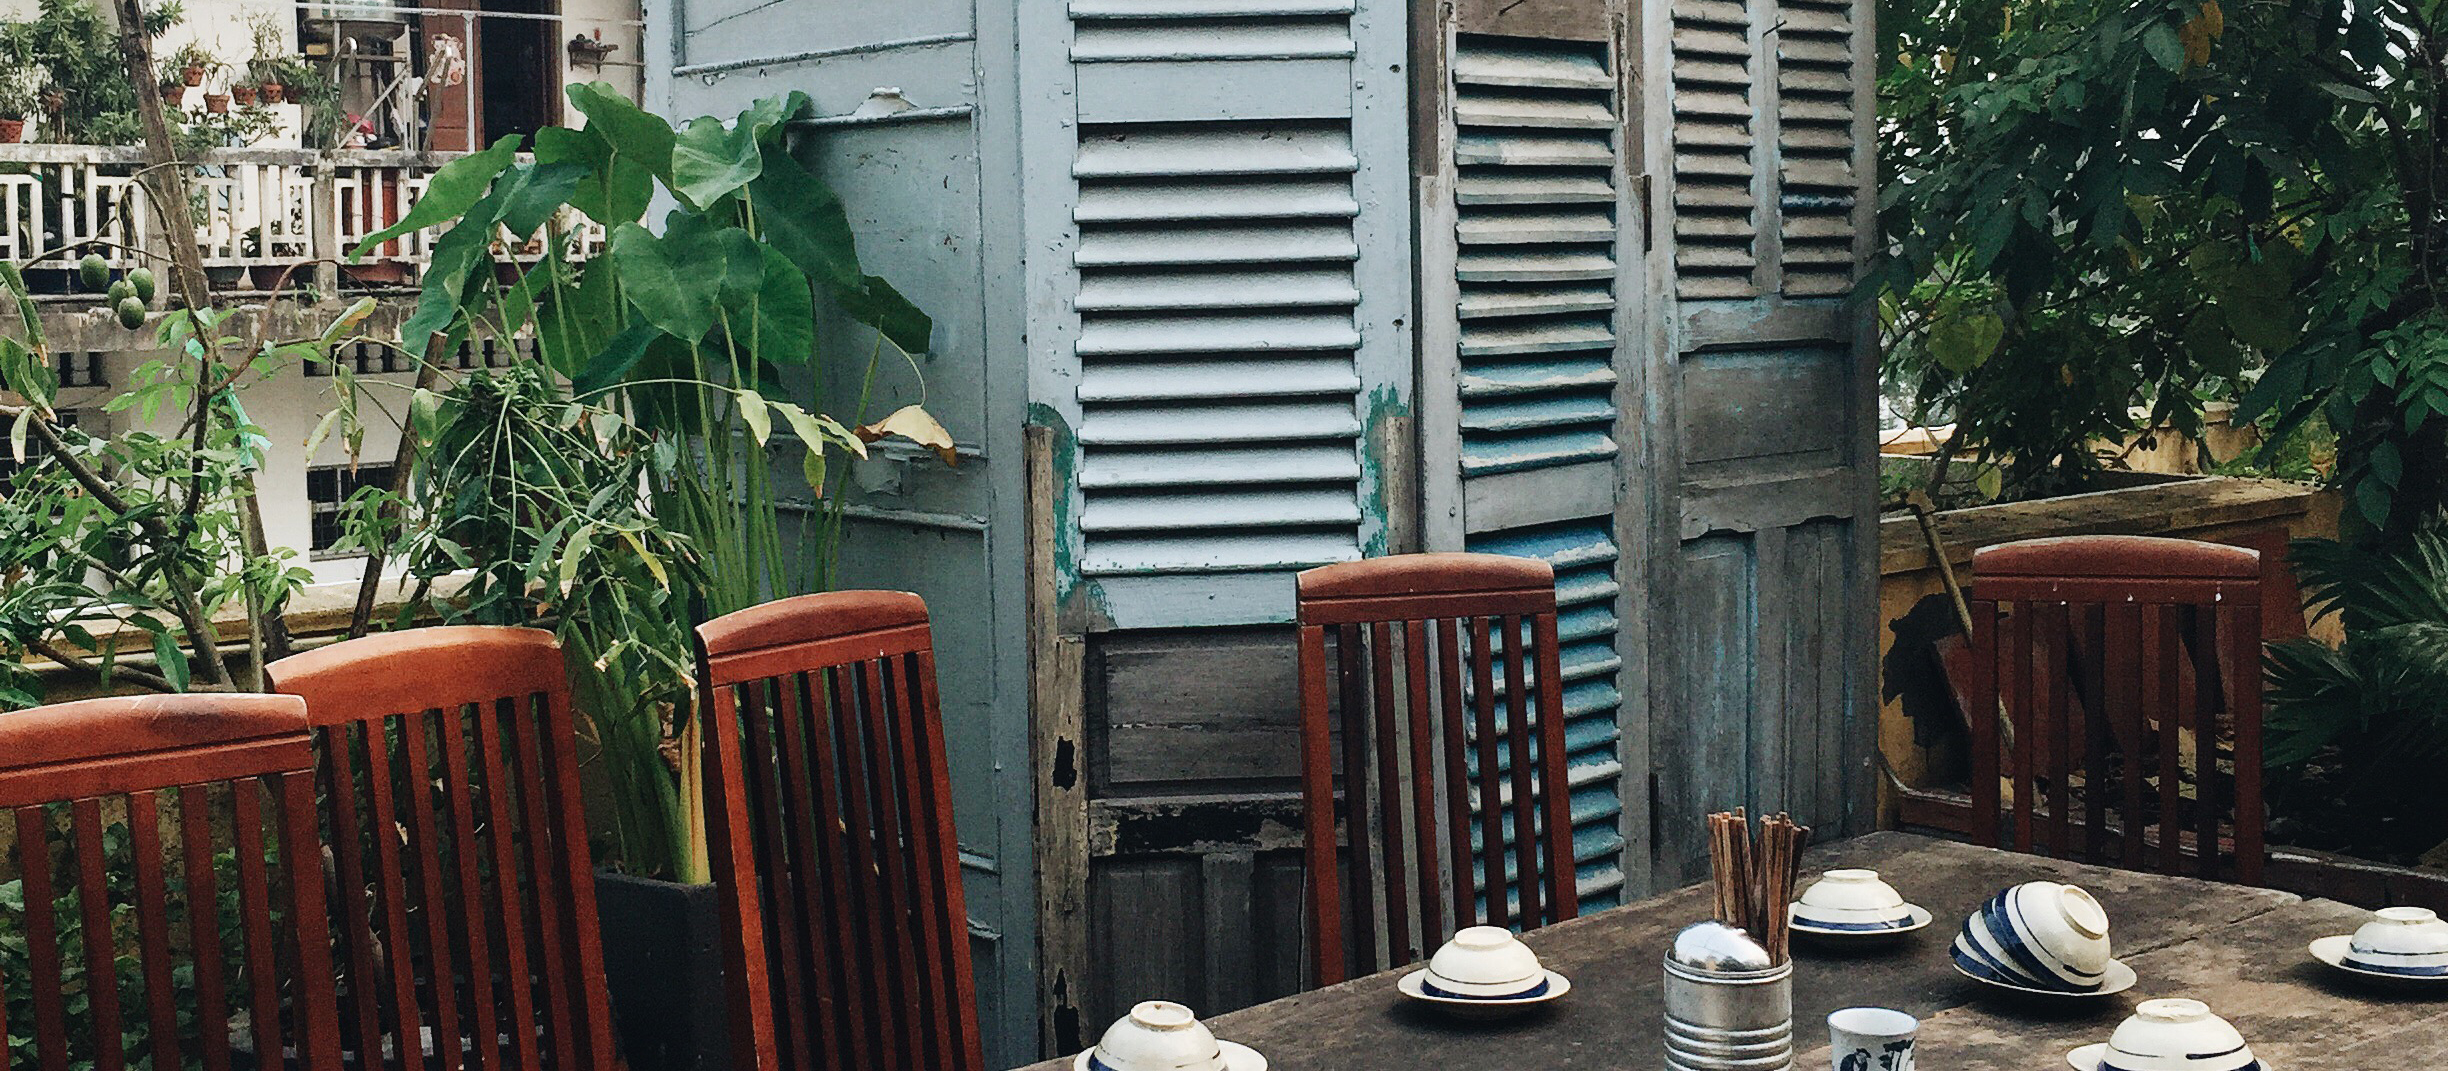 Ho Chi Minh City + VIDEO - Life With Me by Marianna Hewitt